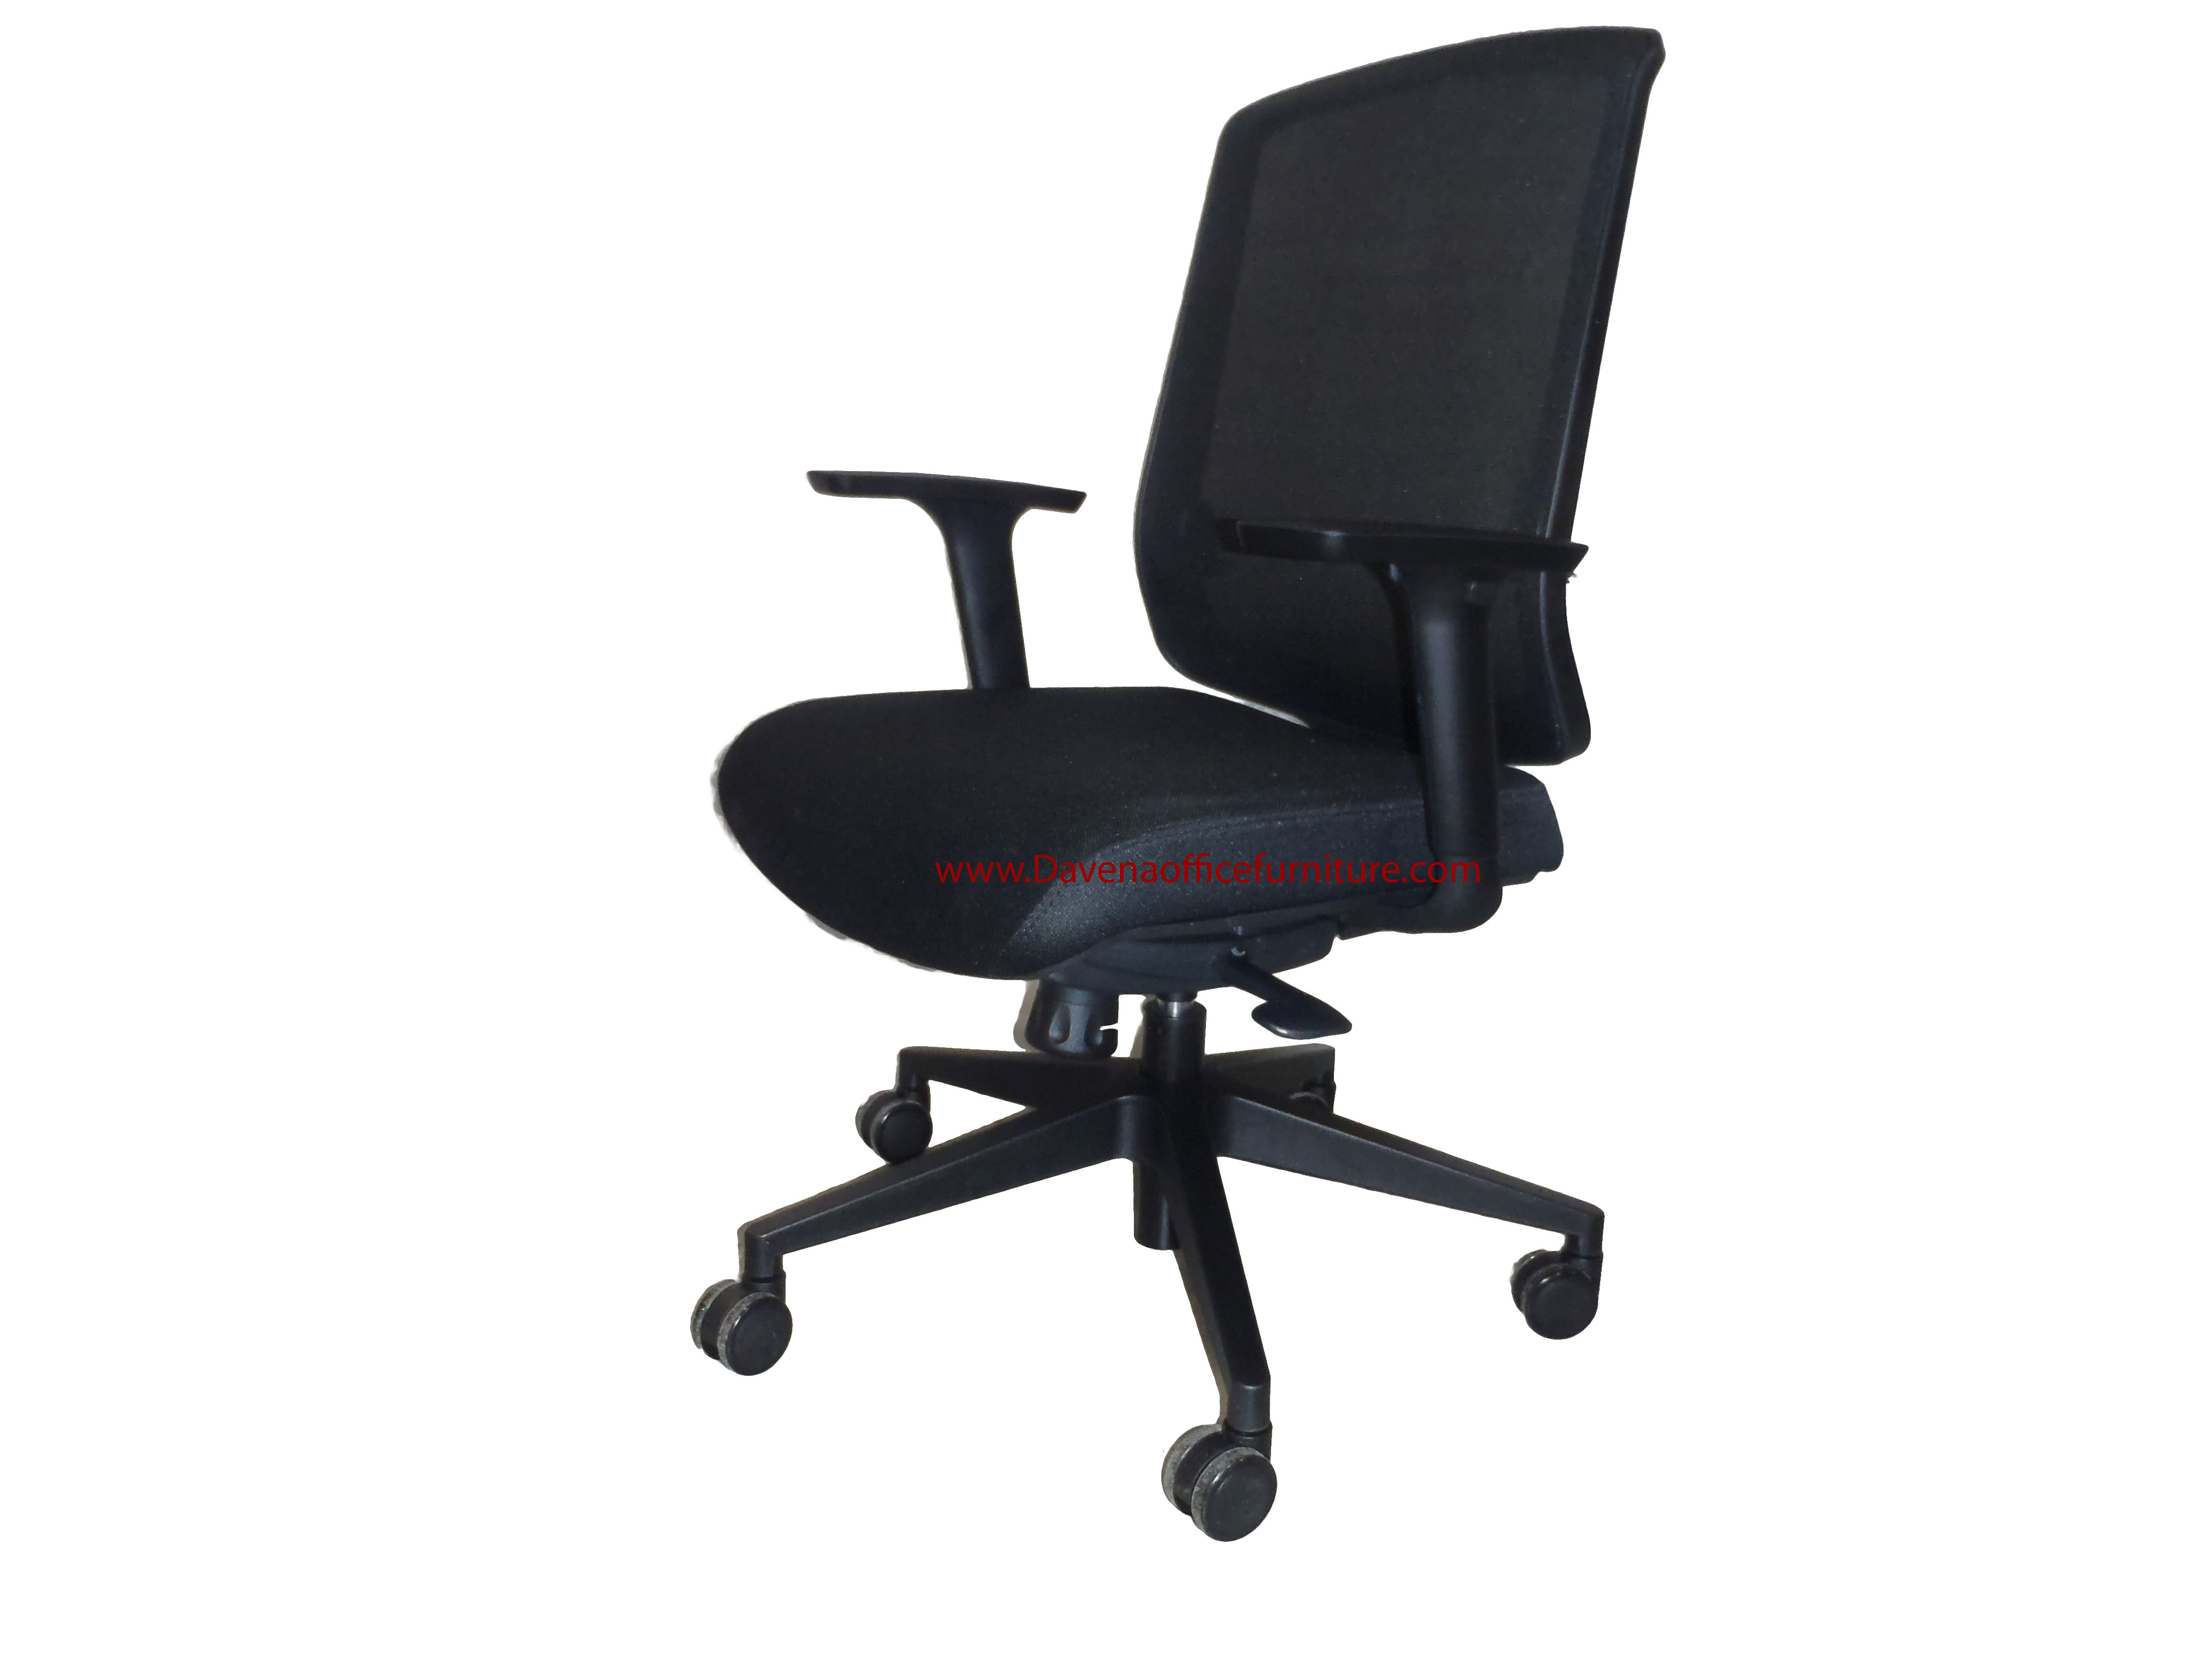 Davena Office Furniture Refurbished And Used Office